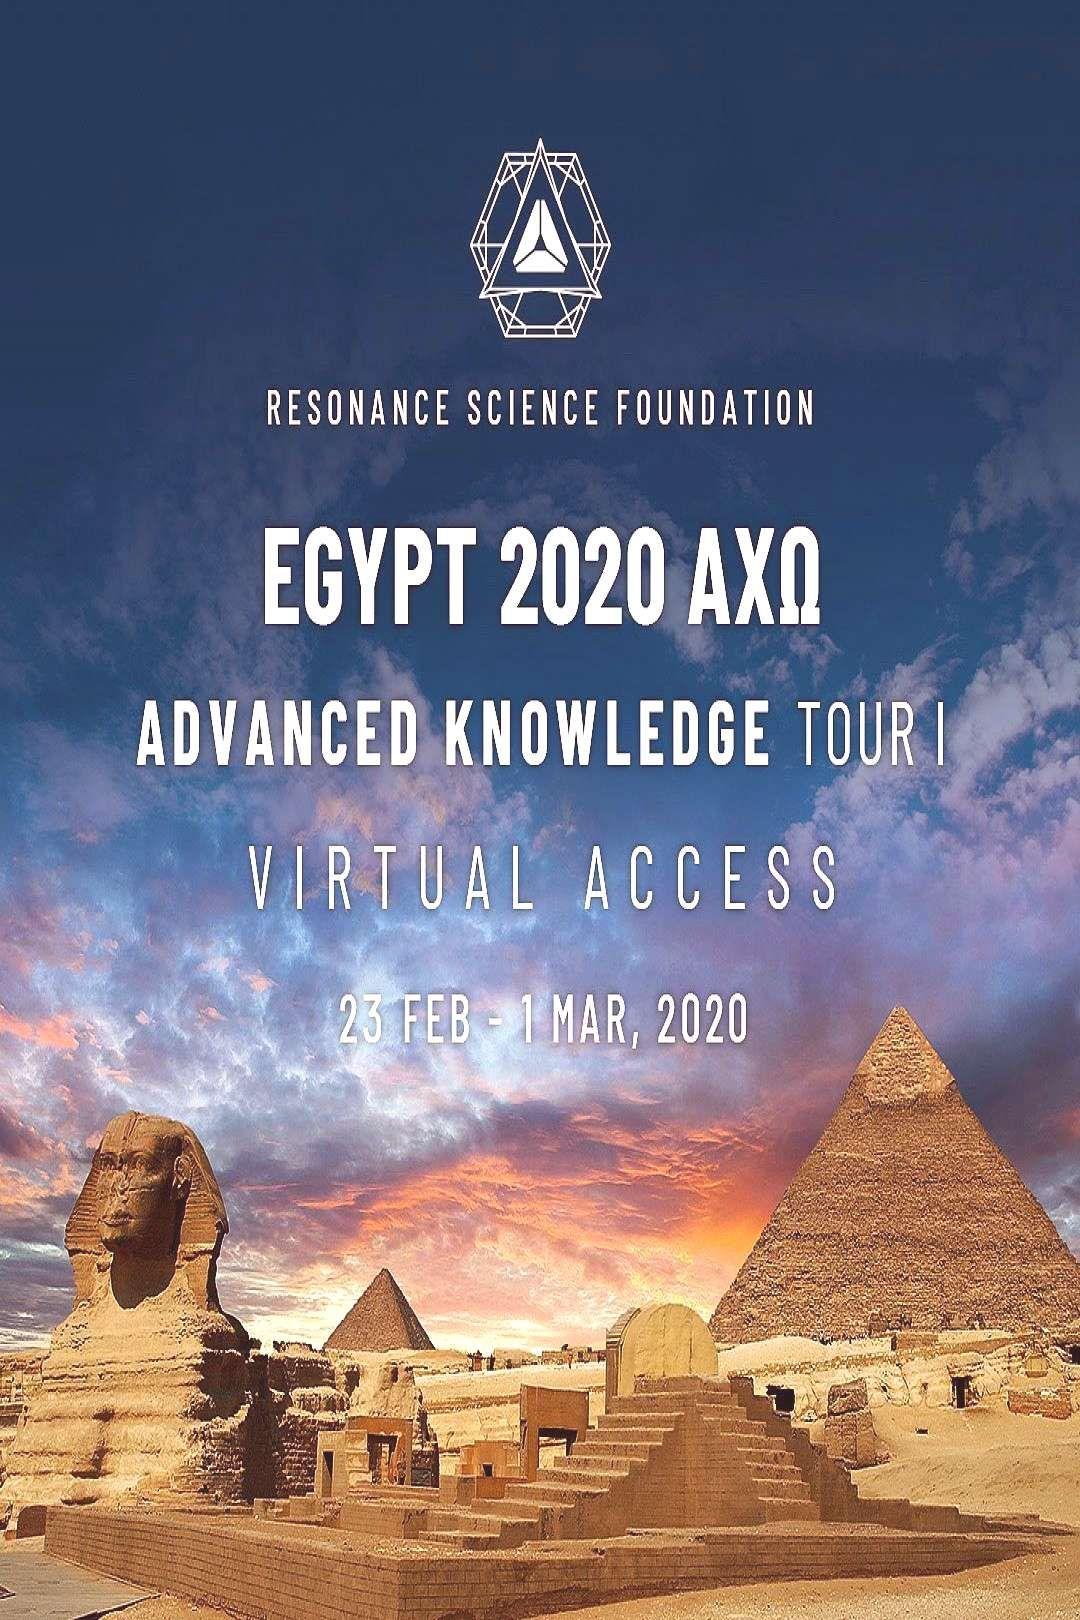 Im on my way to this epic Resonance Science Foundation Expeditio